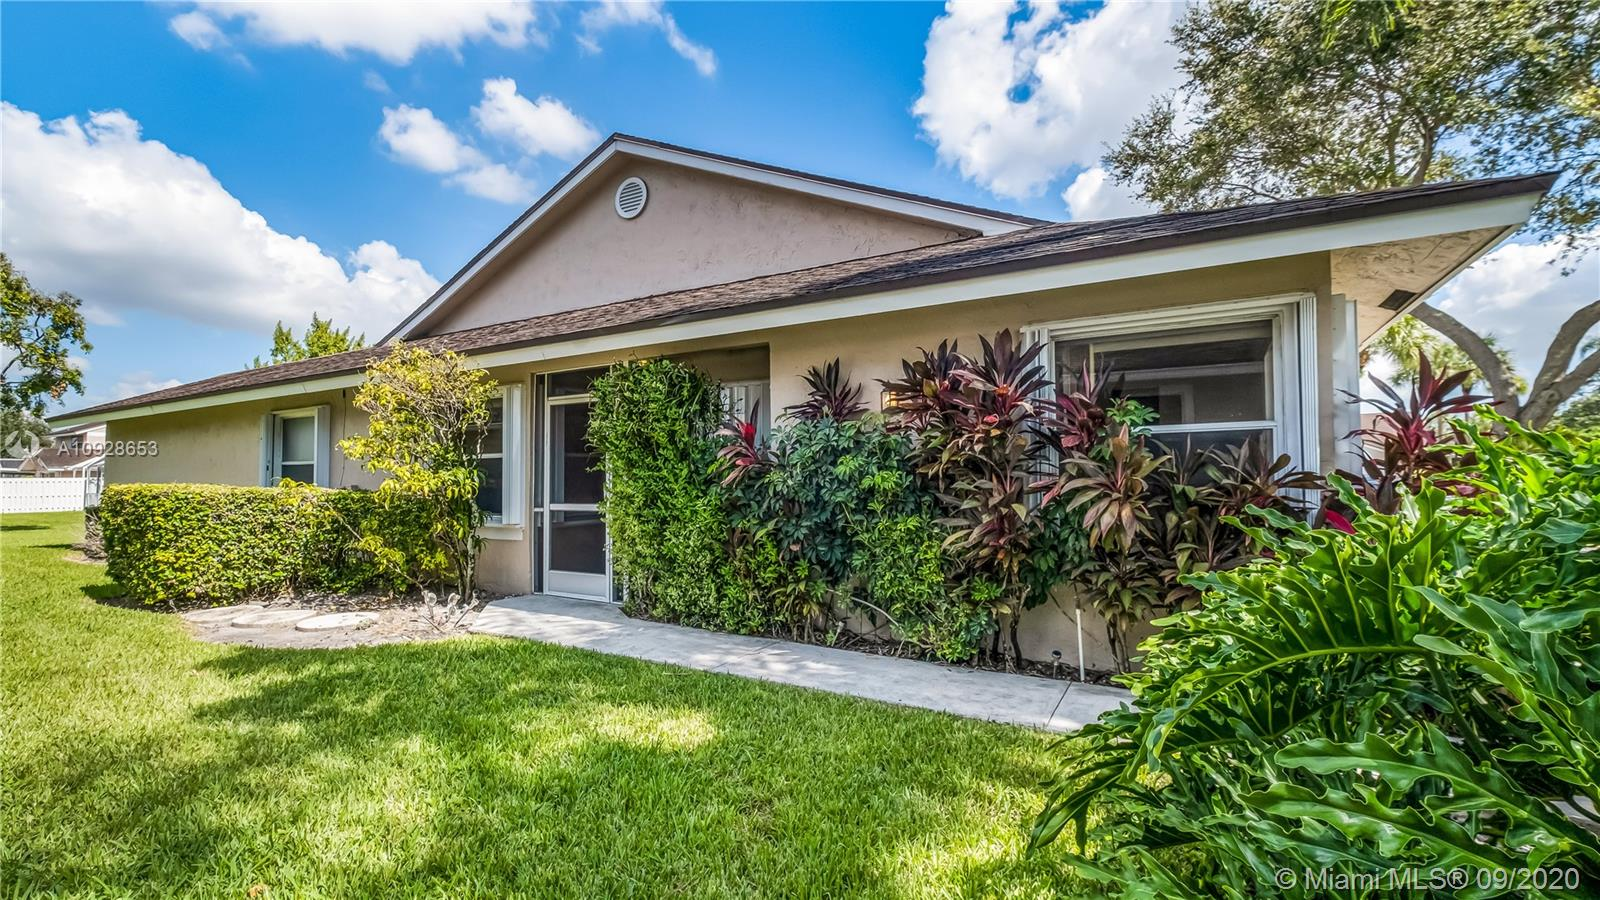 Beautiful ! 2 bedroom, two bathroom, one car garage, corner unit Townhouse located at the peaceful all age community Crystal Key Pointe. It features tile floors, vaulted ceilings, eat-in kitchen with breakfast bar, split bedrooms, walk in closets, washer and dryer, screened patio overlooking grass area, and accordion hurricane shutters all over.Crystal Key Pointe is a pet friendly all ages Community with pool, clubhouse, and tennis court. The HOA maintenance includes: building exterior, roof, insurance, lawn, recreational facilities, and common areas. Crystal Key Pointe is close to major highways, shopping and dining. Come and make it your home !